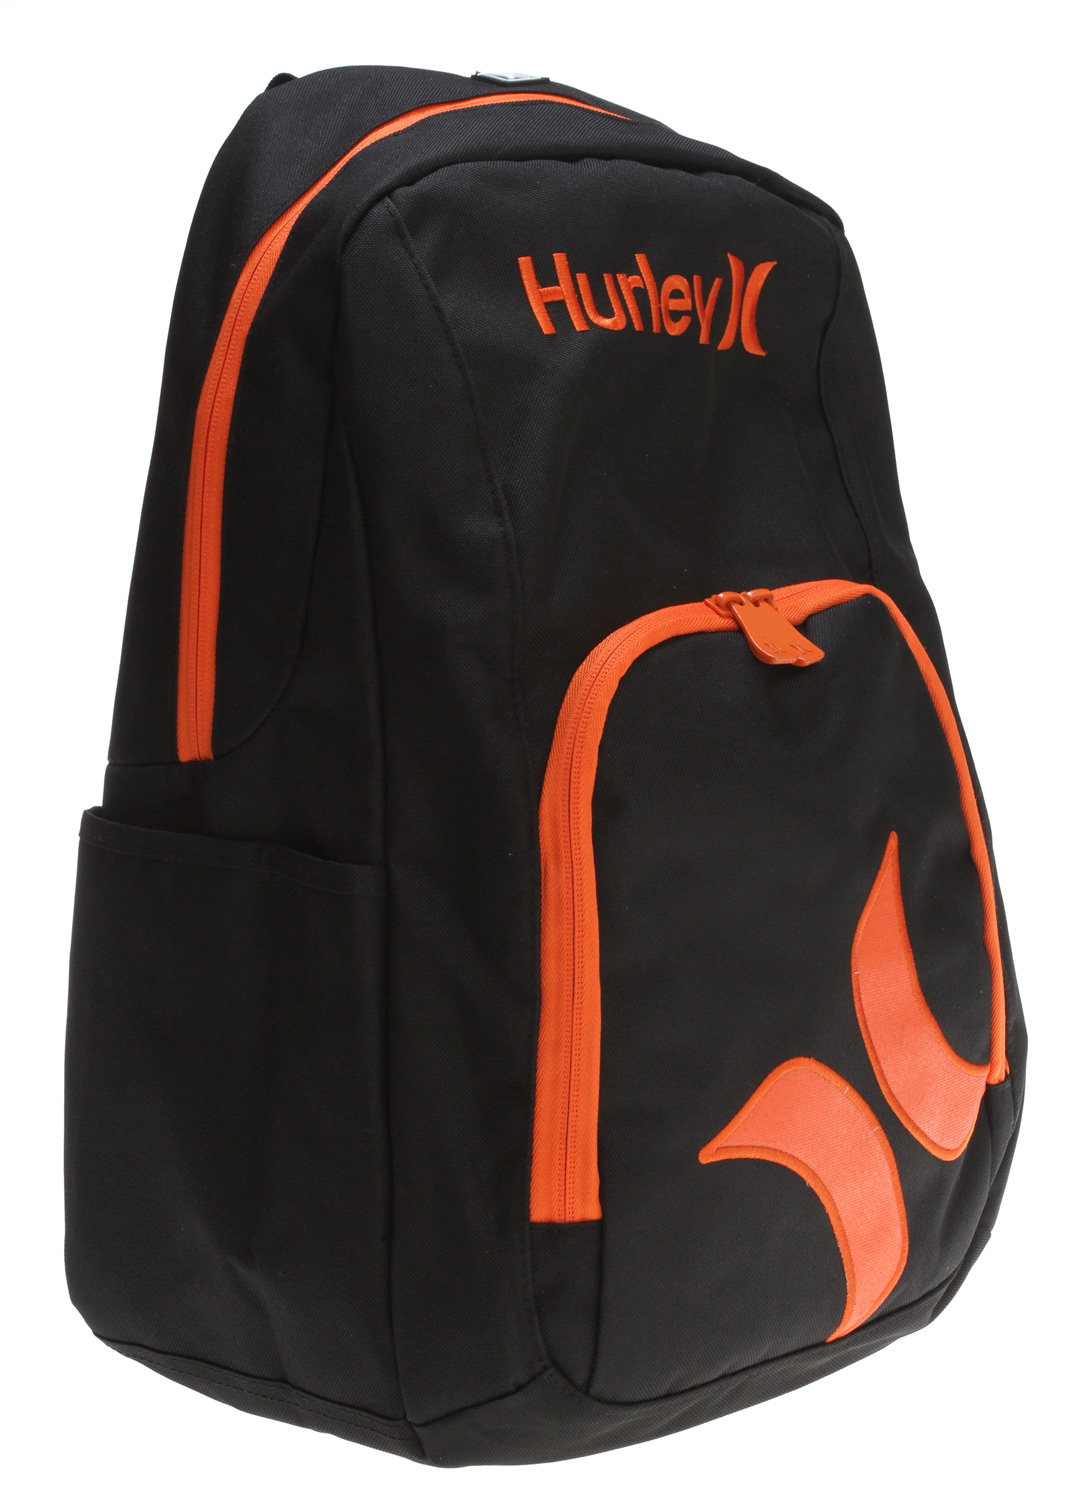 "Surf Key Features of the Hurley Professor Backpack: Embroidered ""Hurley"" and logo canvas backpack Laptop and multi zip compartments Padded adjustable straps - $19.95"